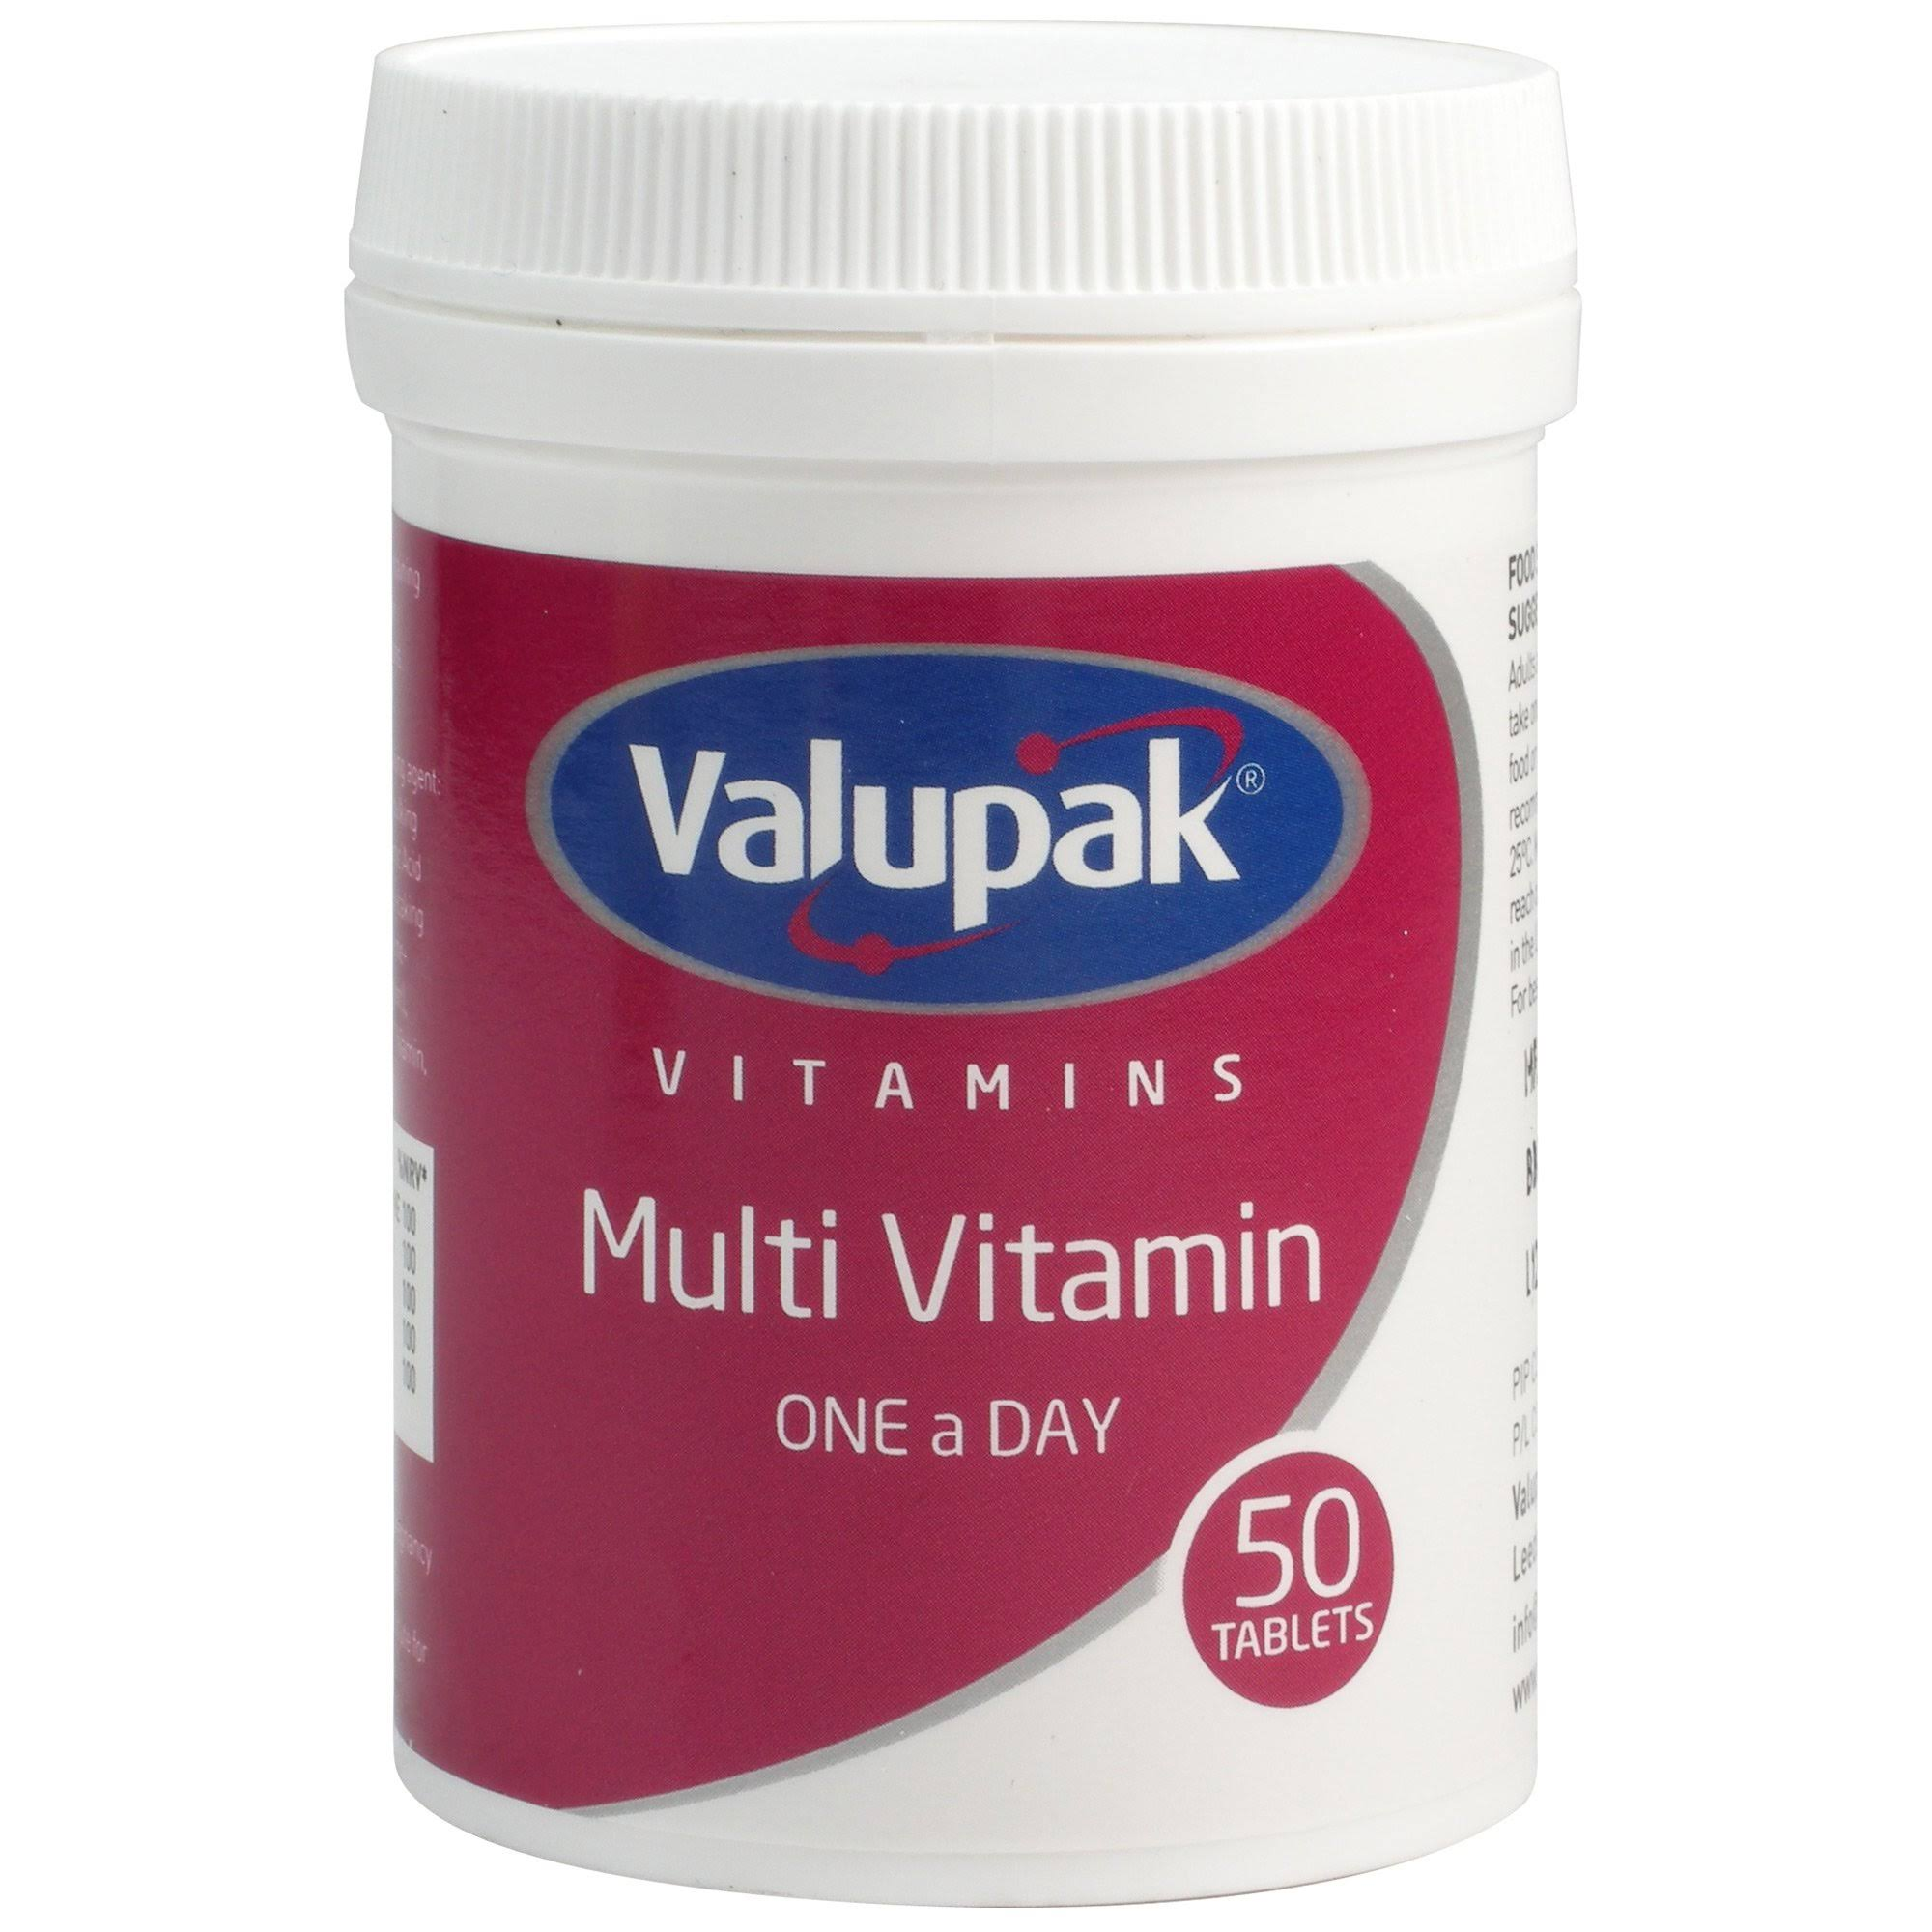 Valupak Multi Vitamin - 50 Tablets